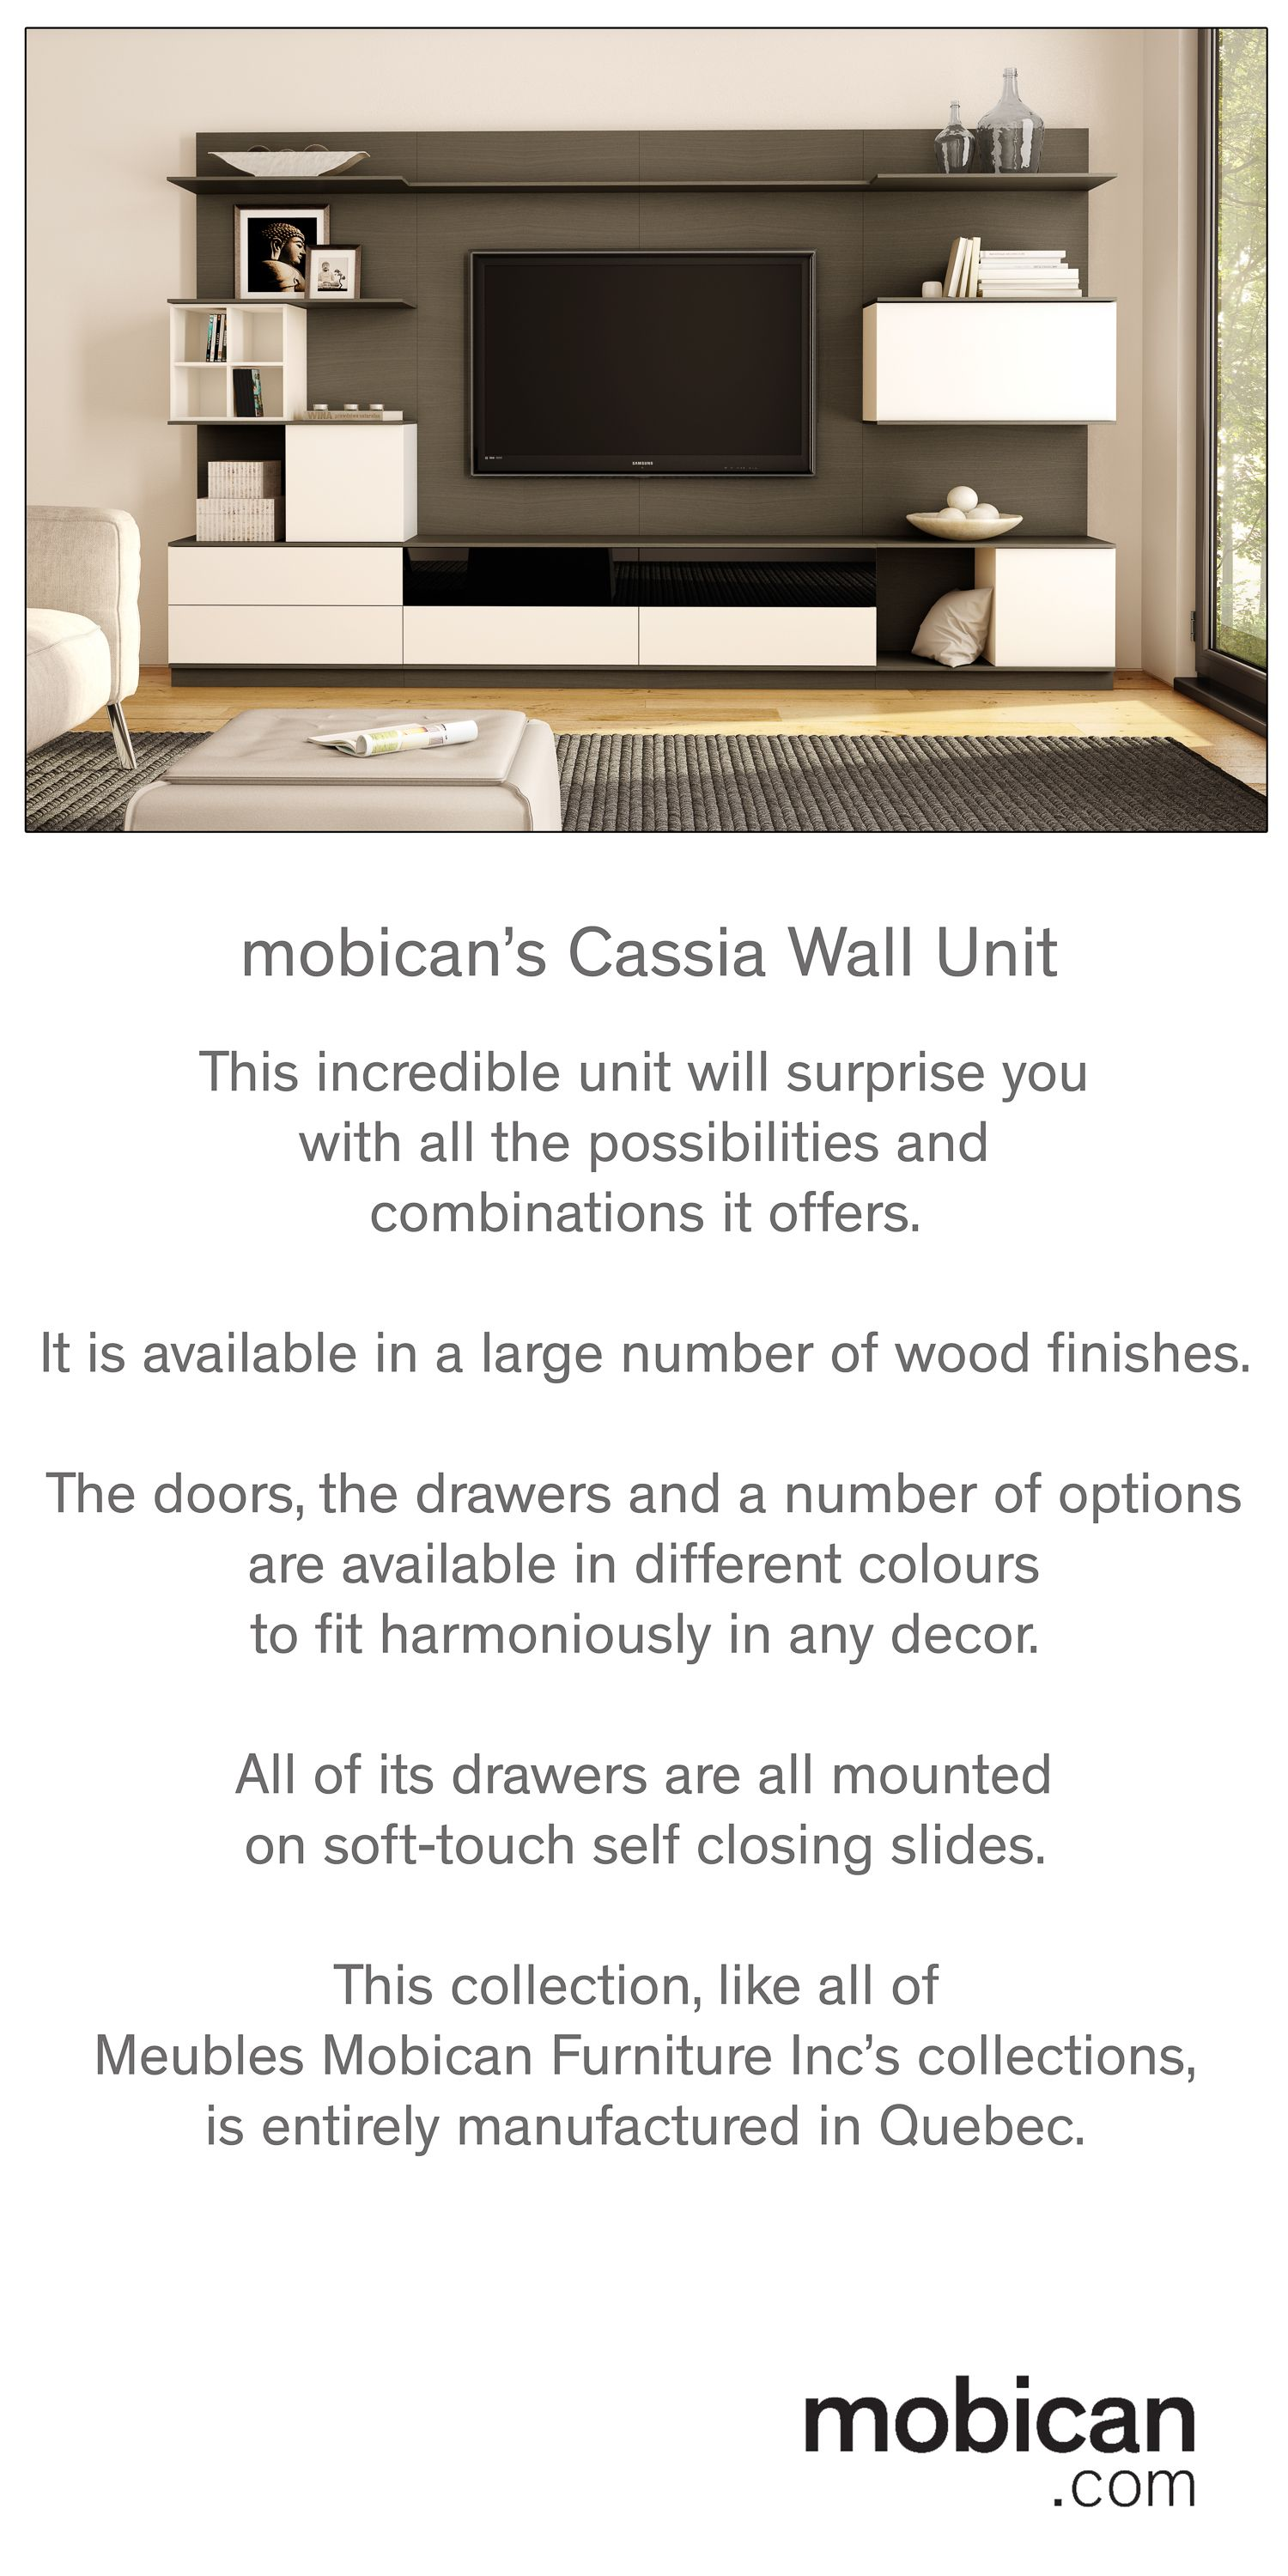 Meubles Mobican Furniture Mobican S Cassia Wall Unit Is A Stunning Piece Of Furniture Its